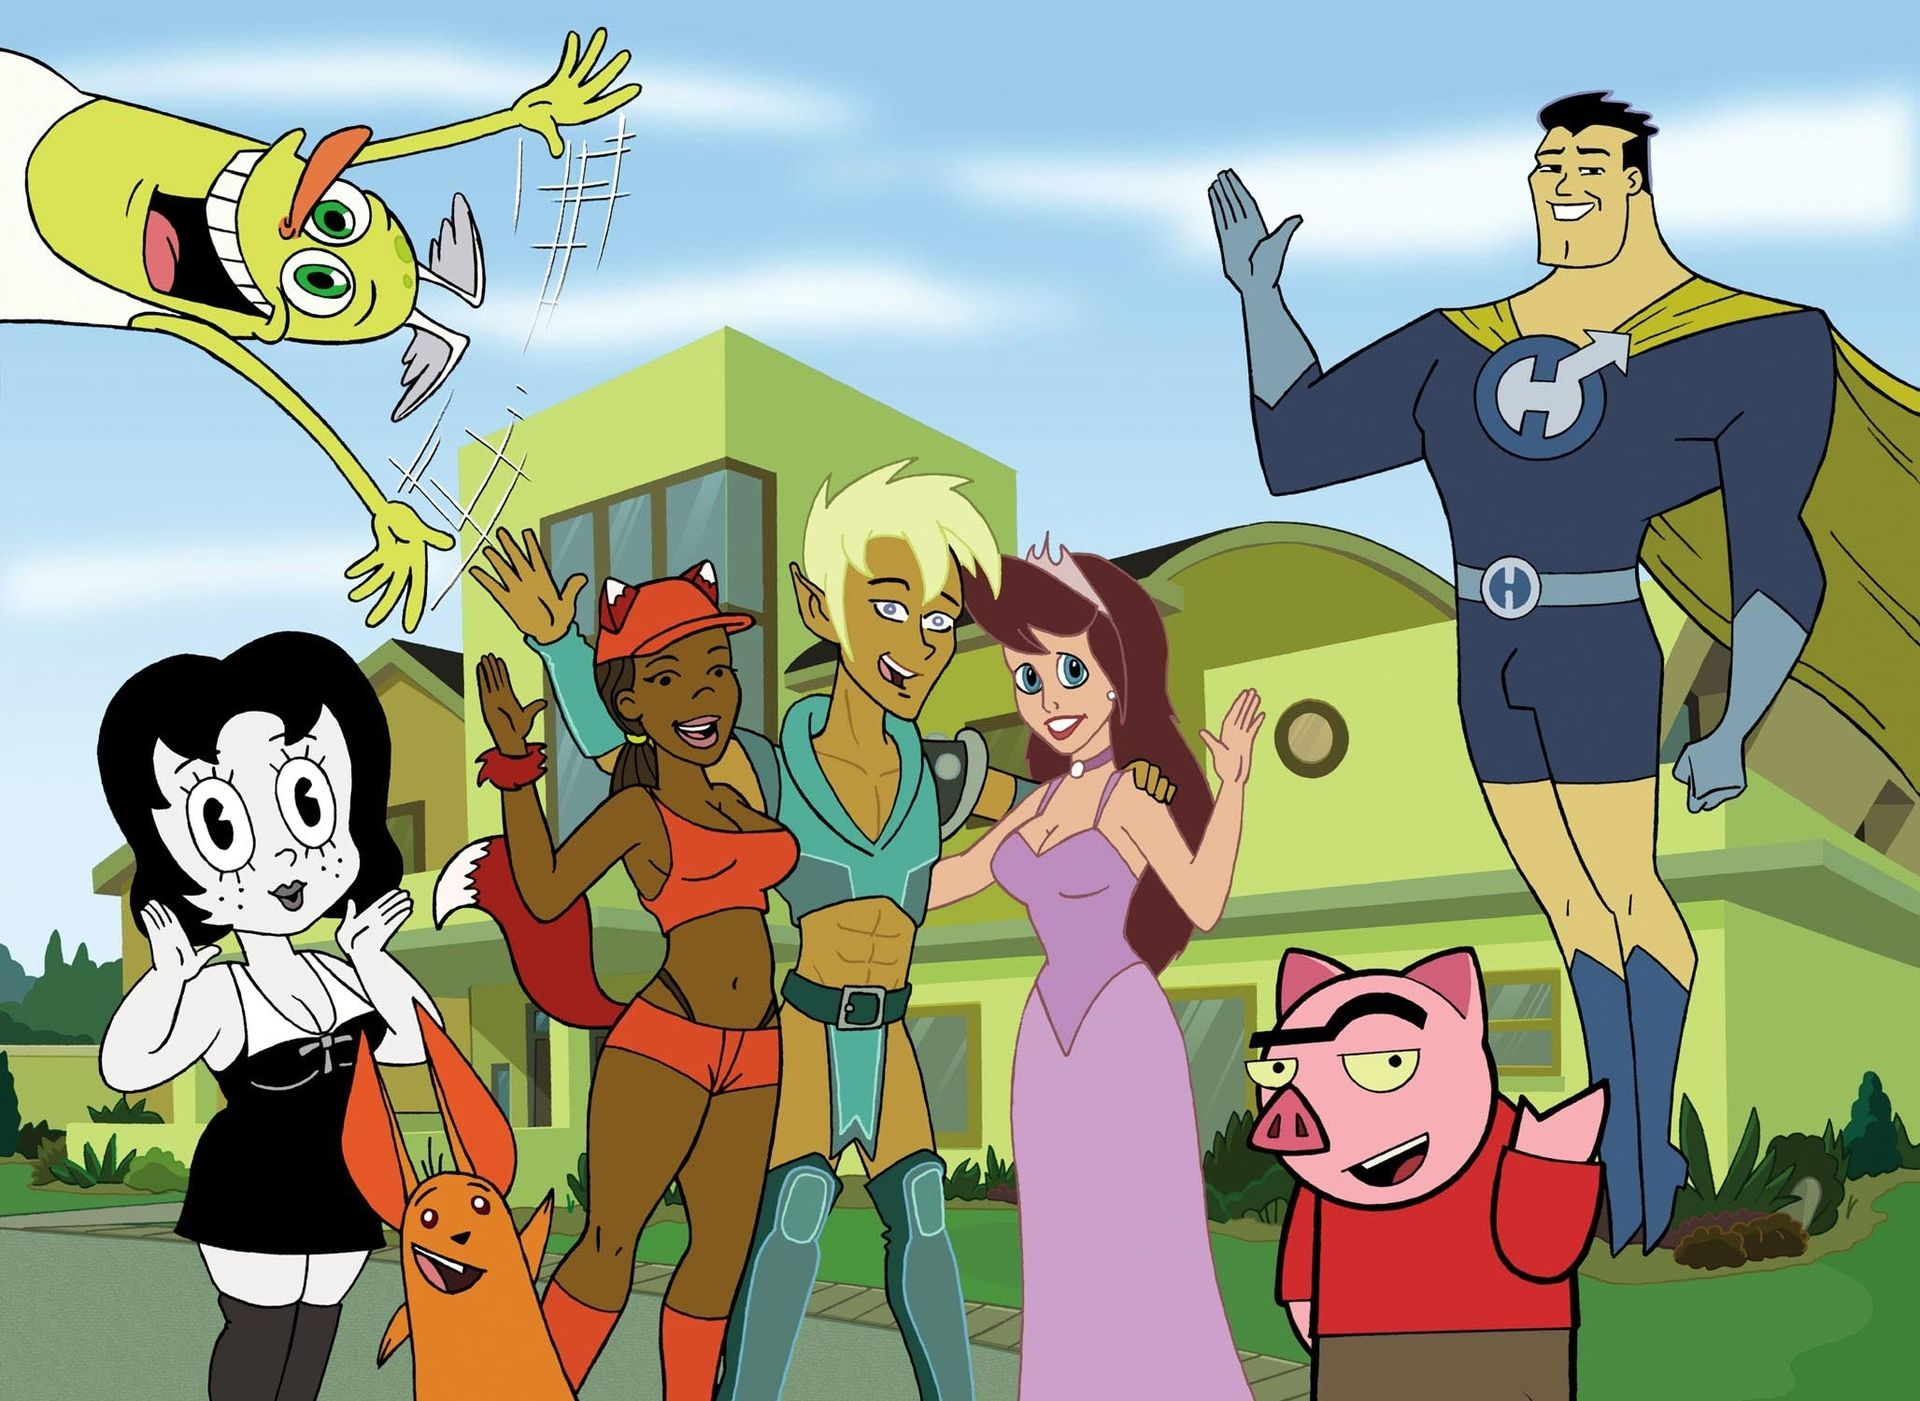 1. Drawn Together